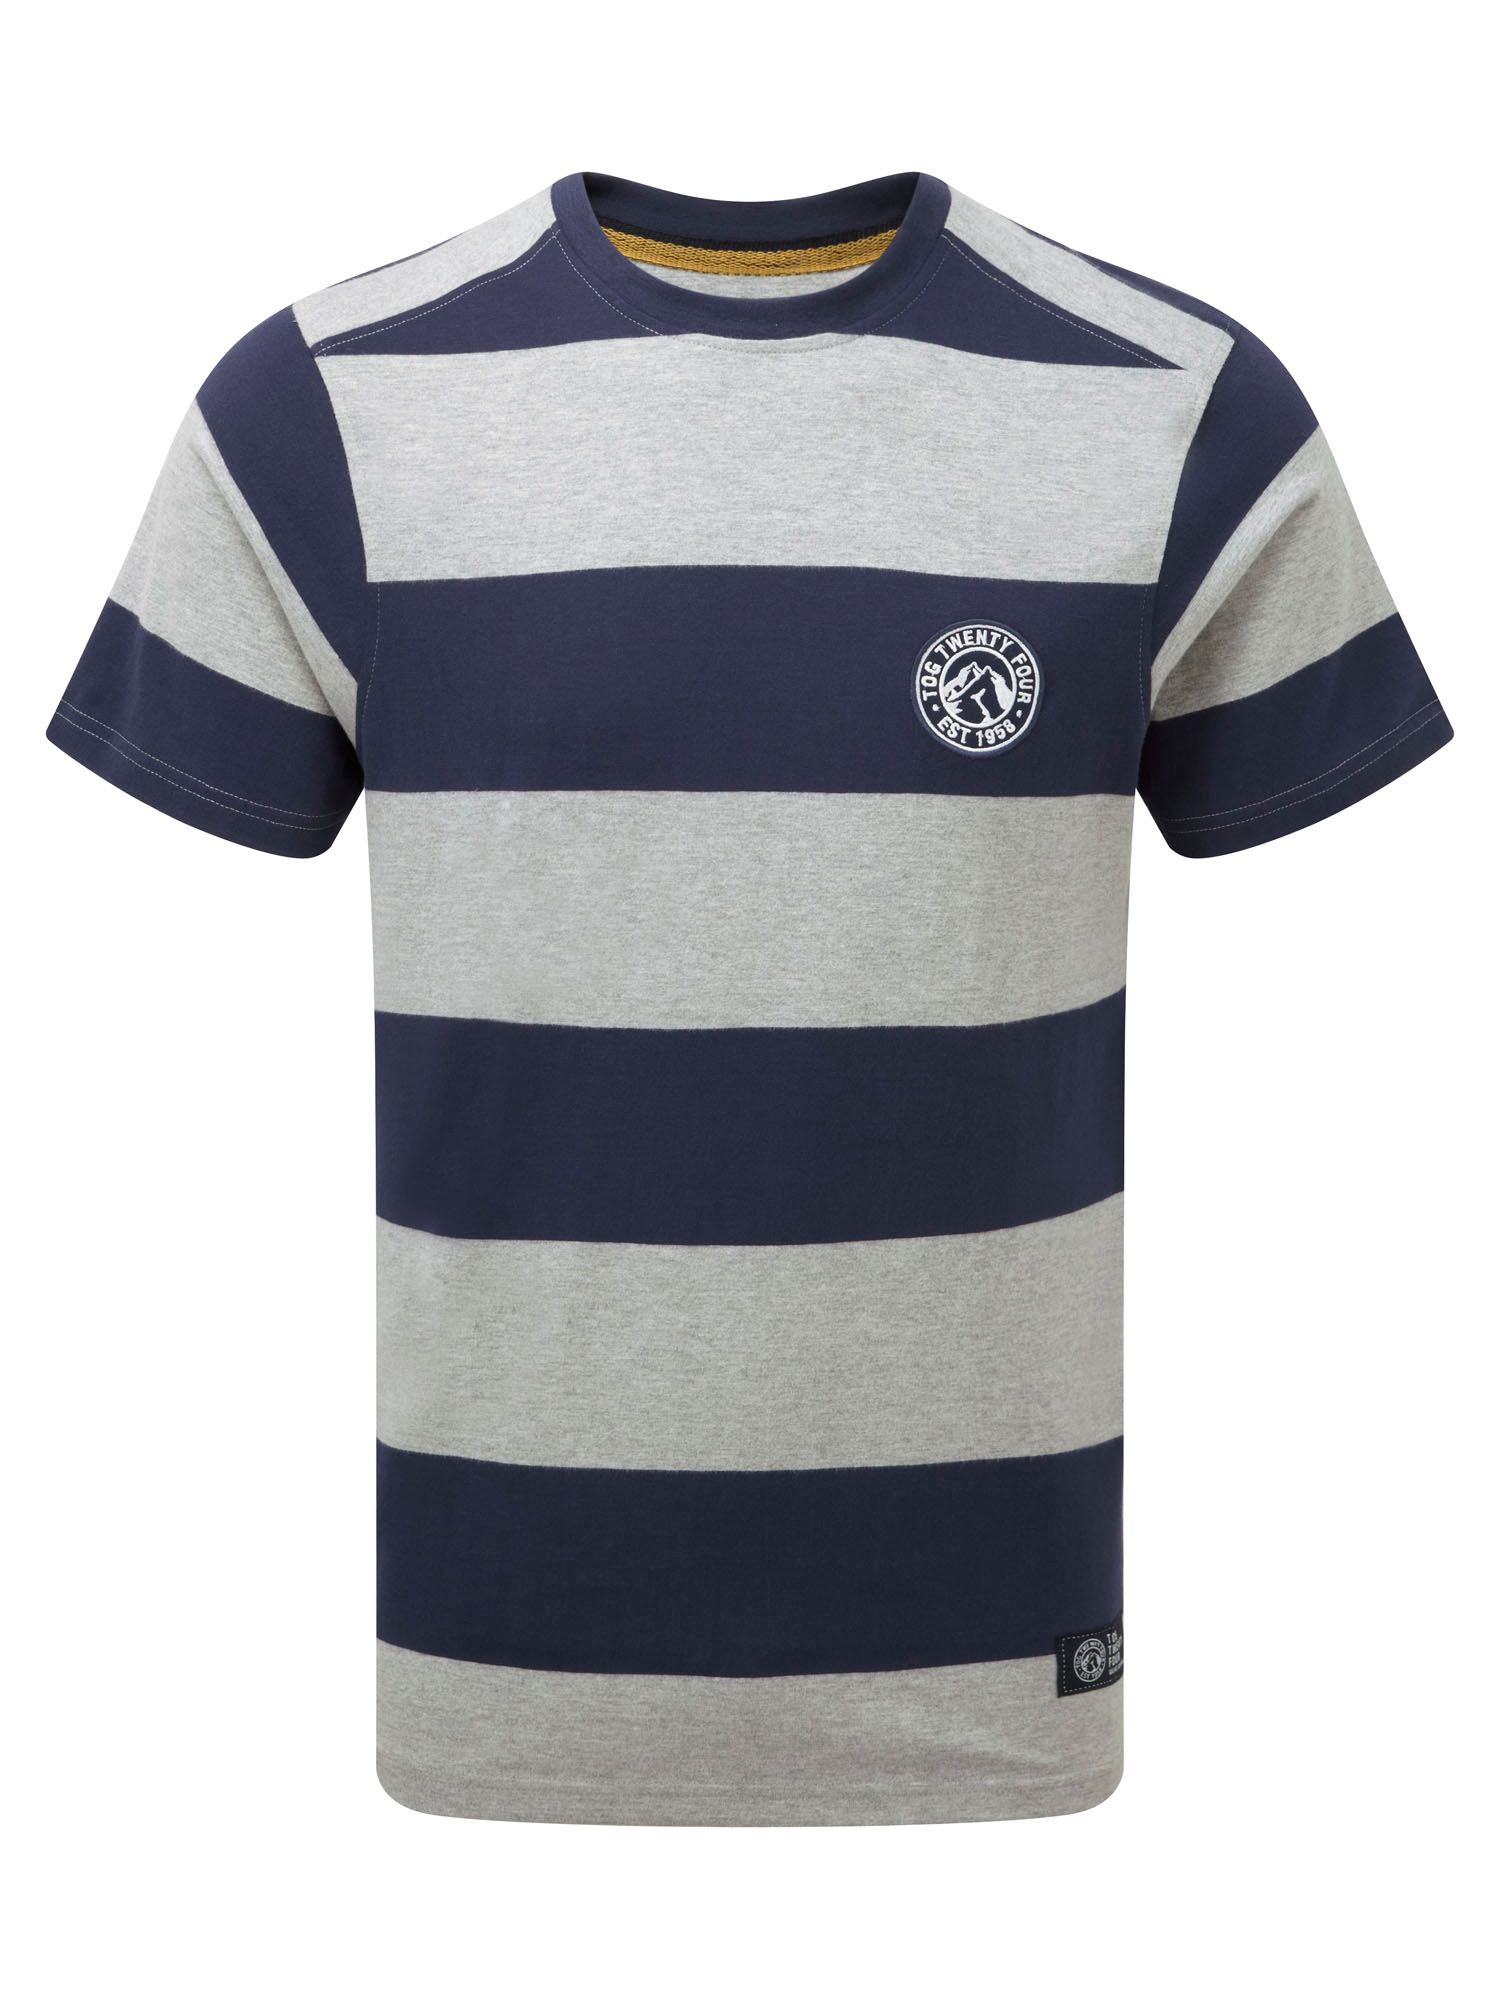 Mercury stripe short sleeve t-shirt